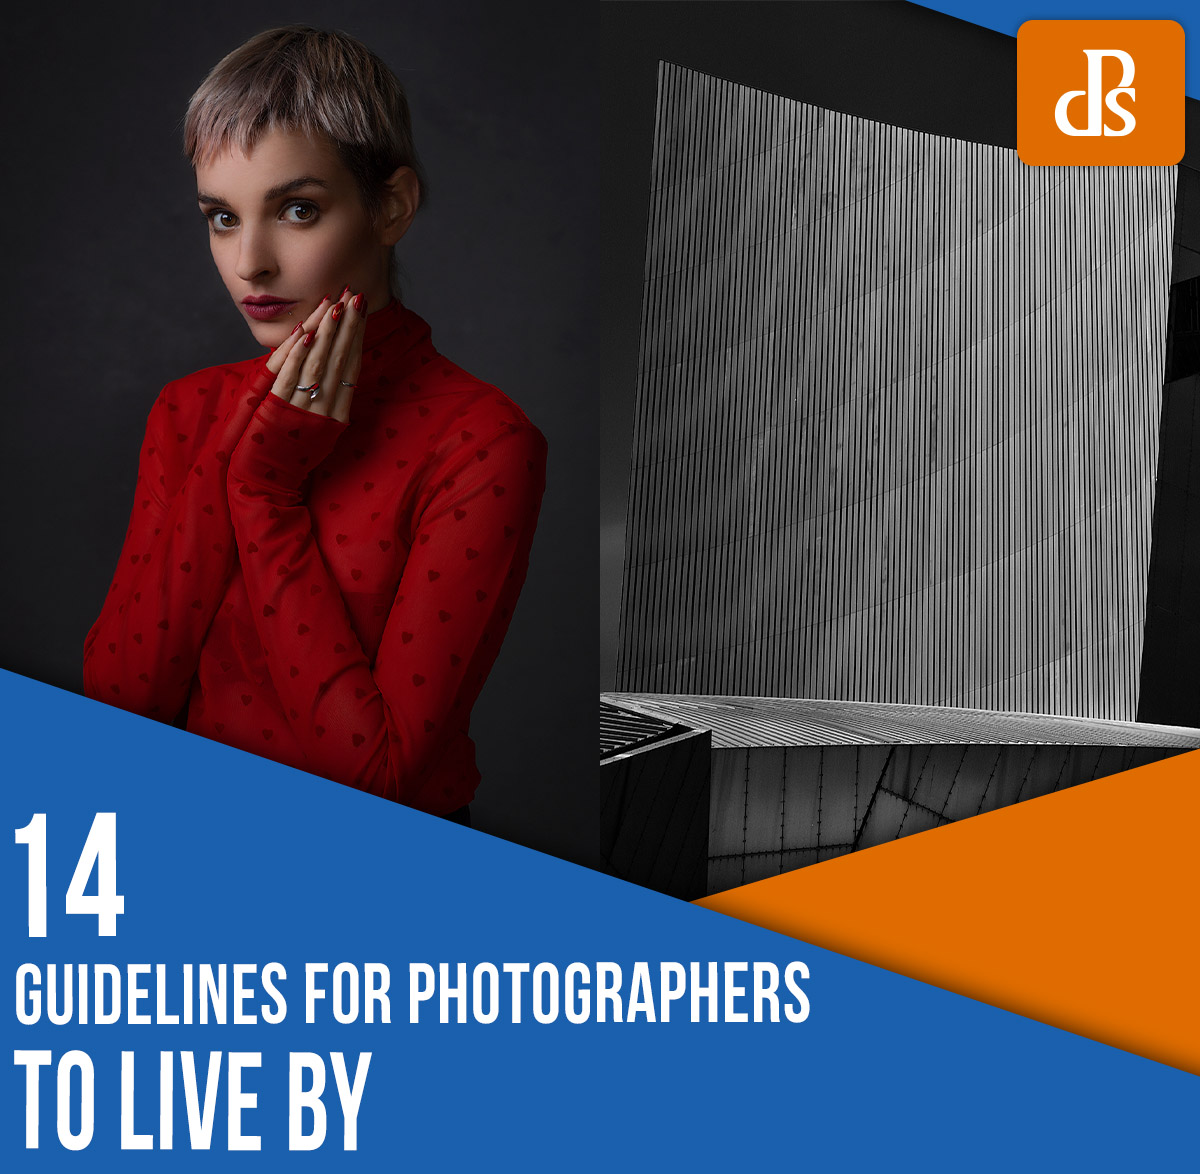 guidelines for photographers to live by